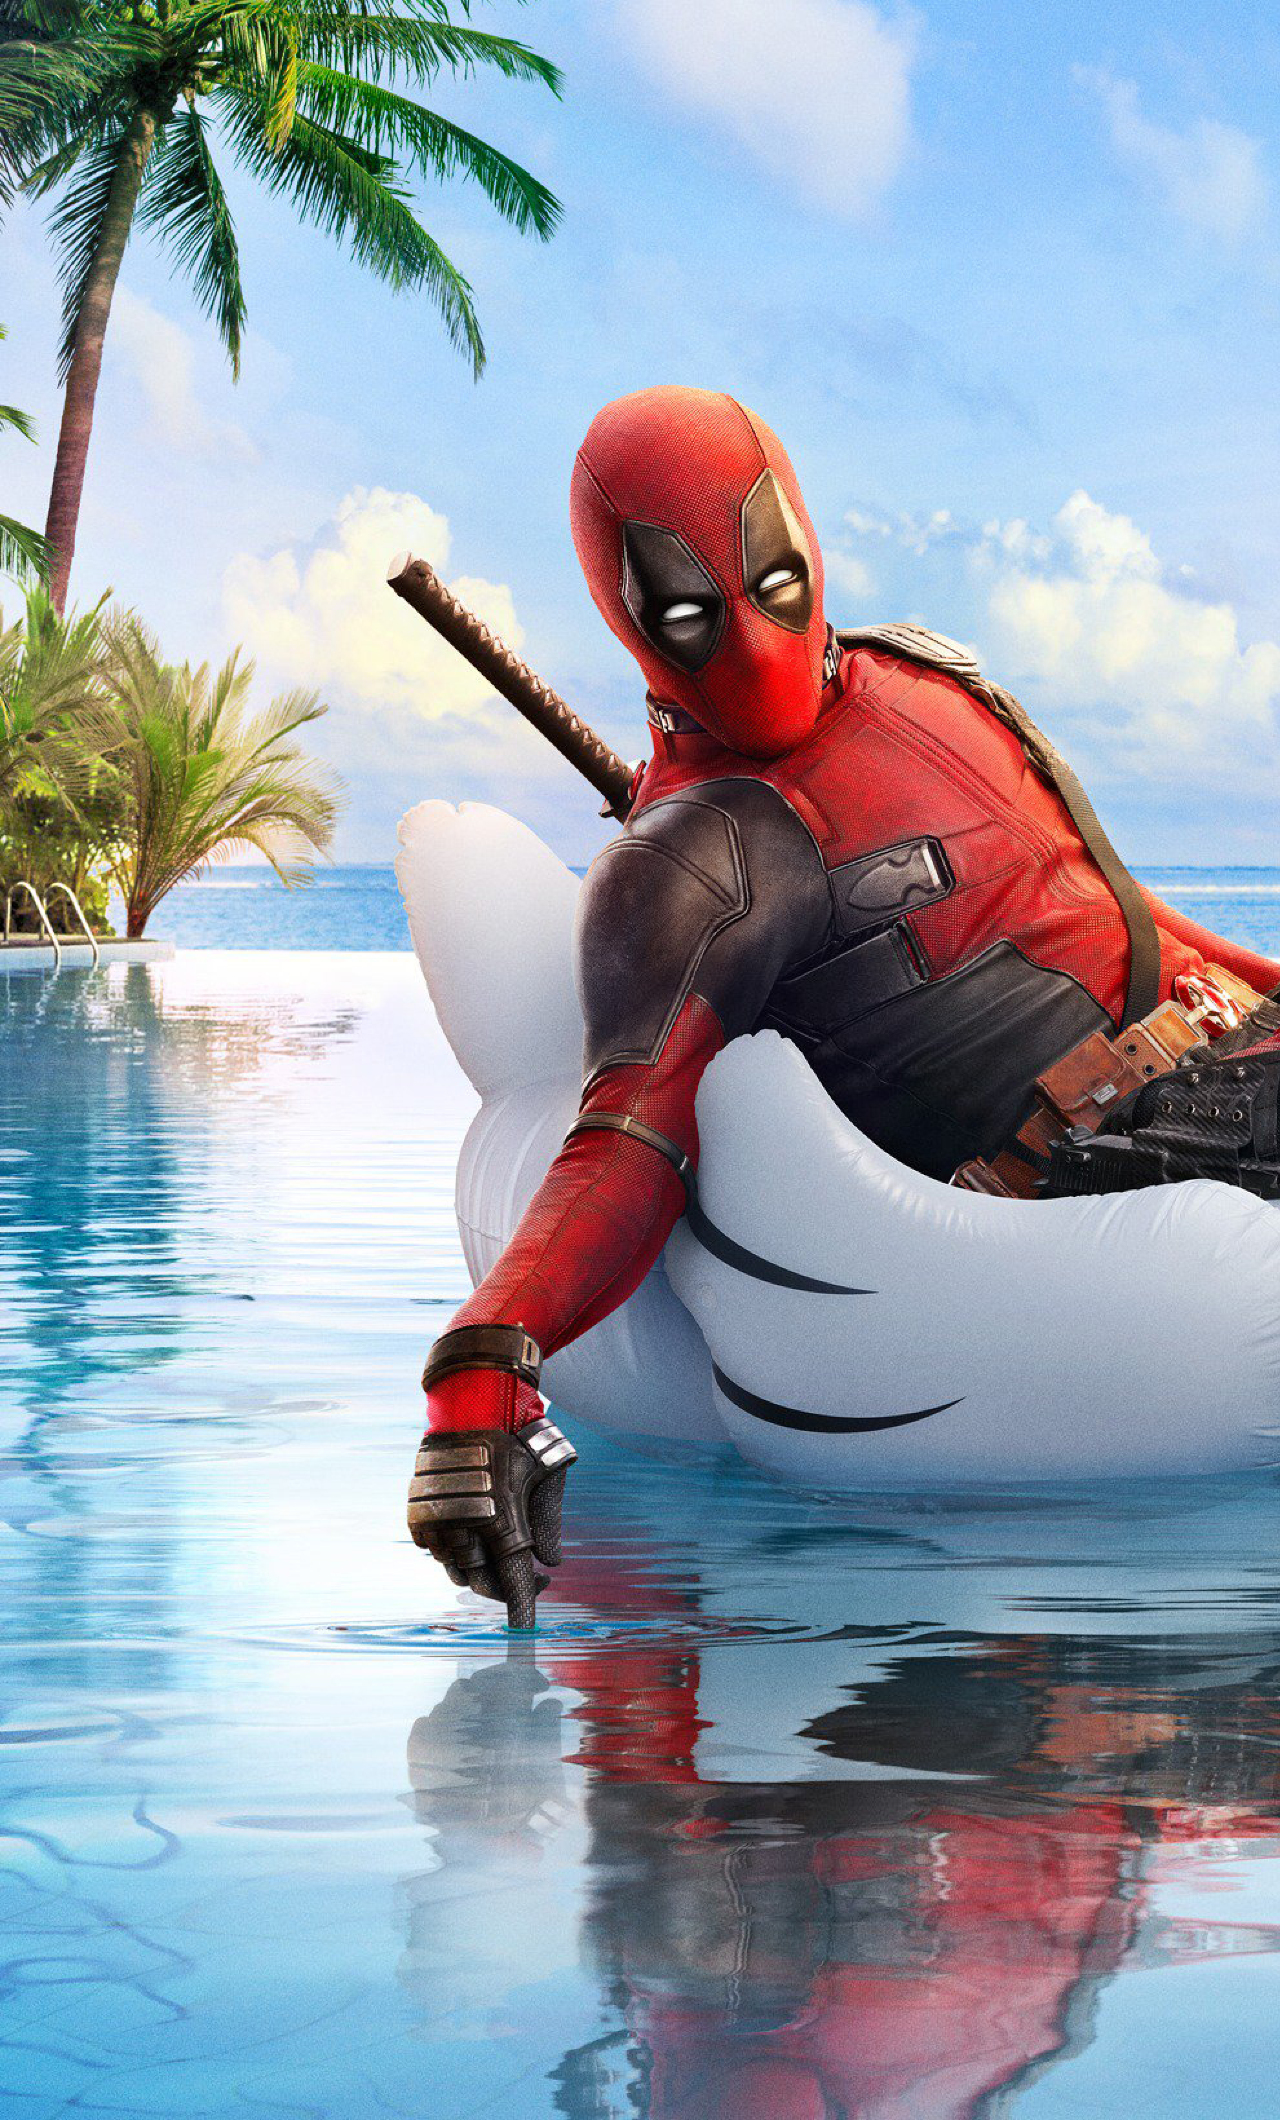 Deadpool 2 Funny Poster, Full HD 2K Wallpaper